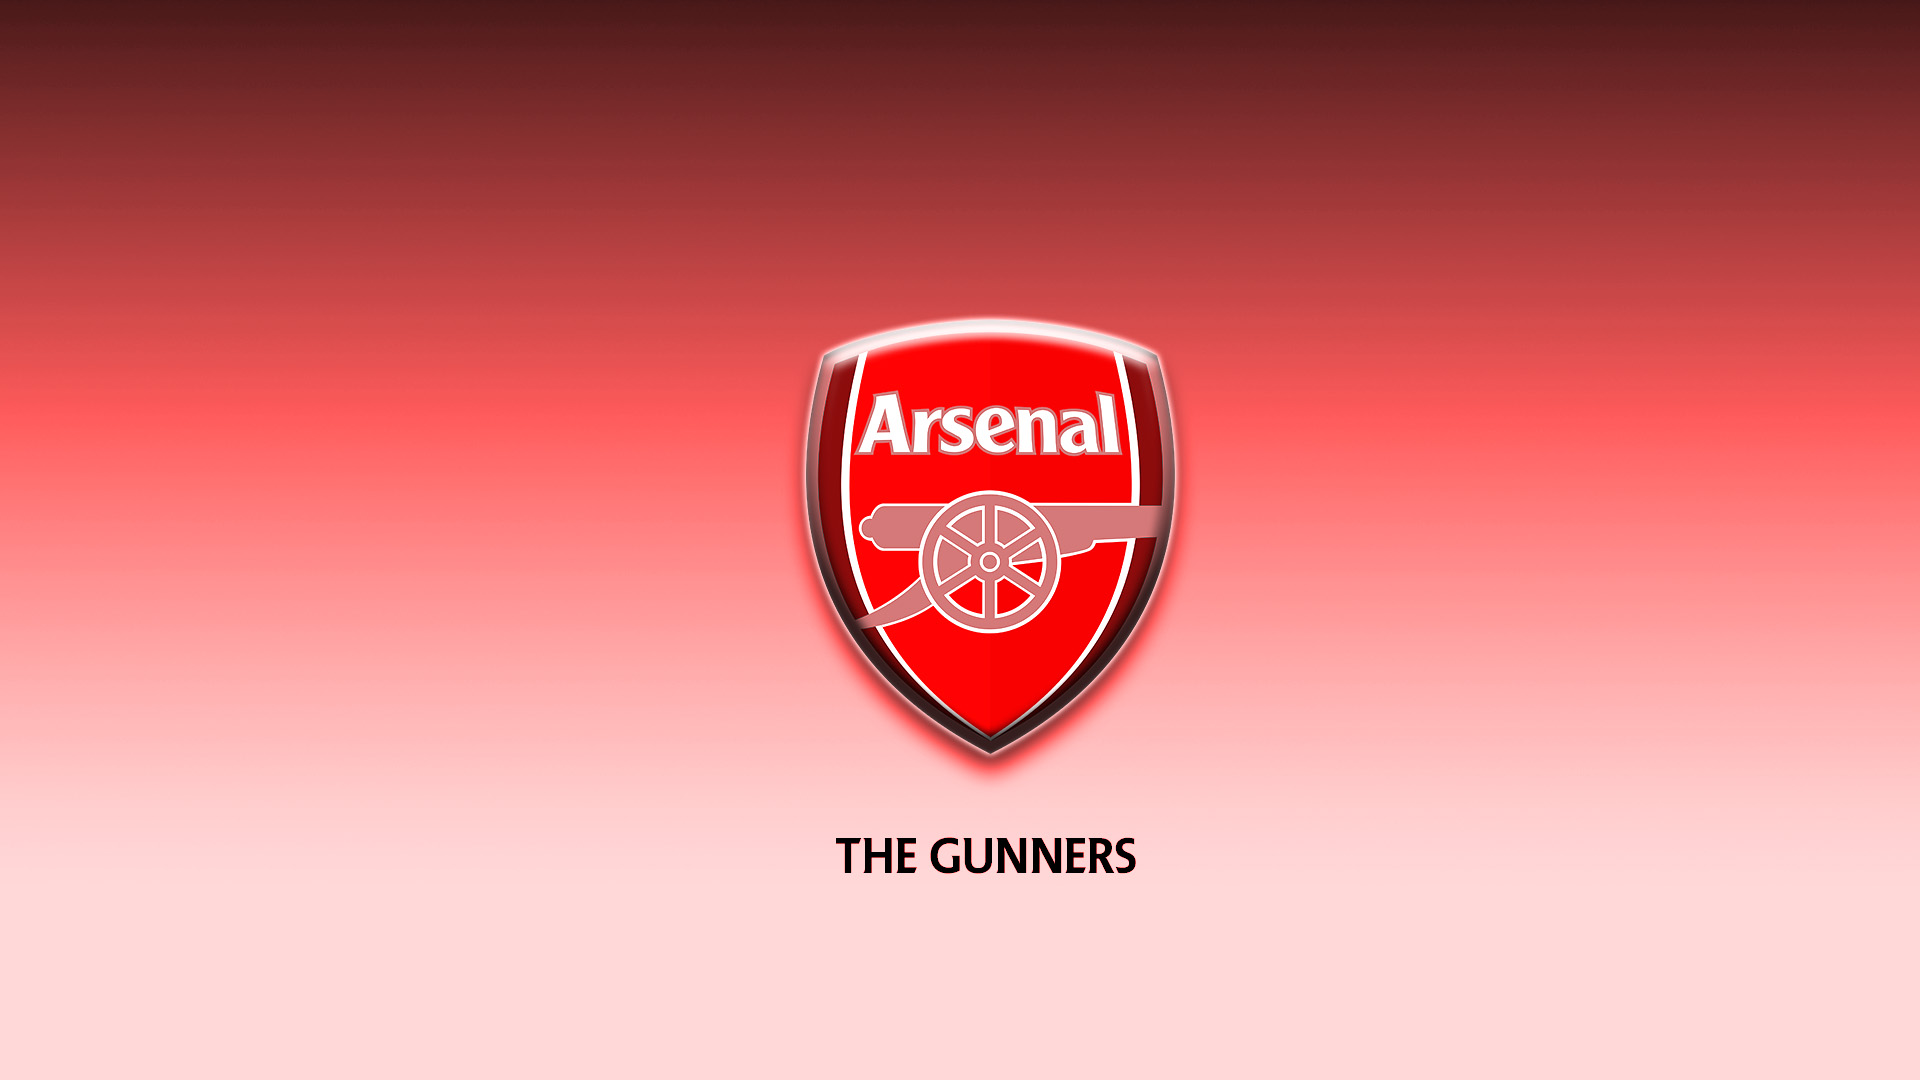 Arsenal Wallpaper 4k: Arsenal HQ Wallpapers